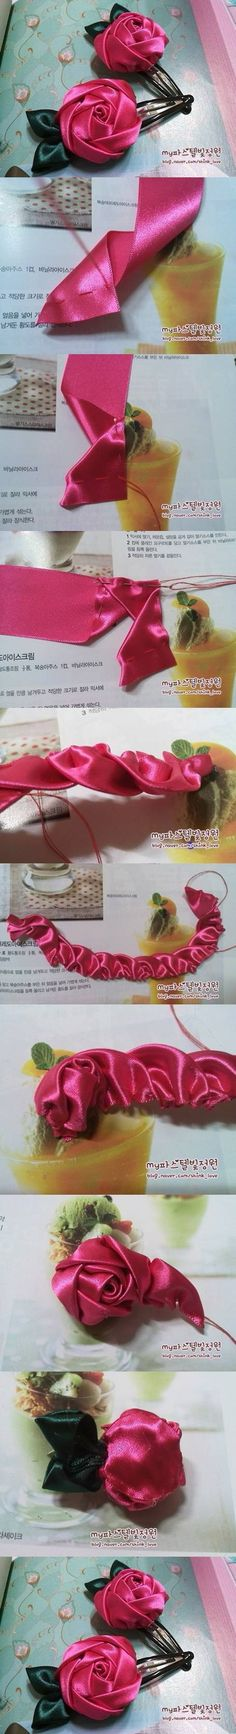 DIY Rose of Organza Ribbon DIY Rose of Organza Ribbon by diyforever